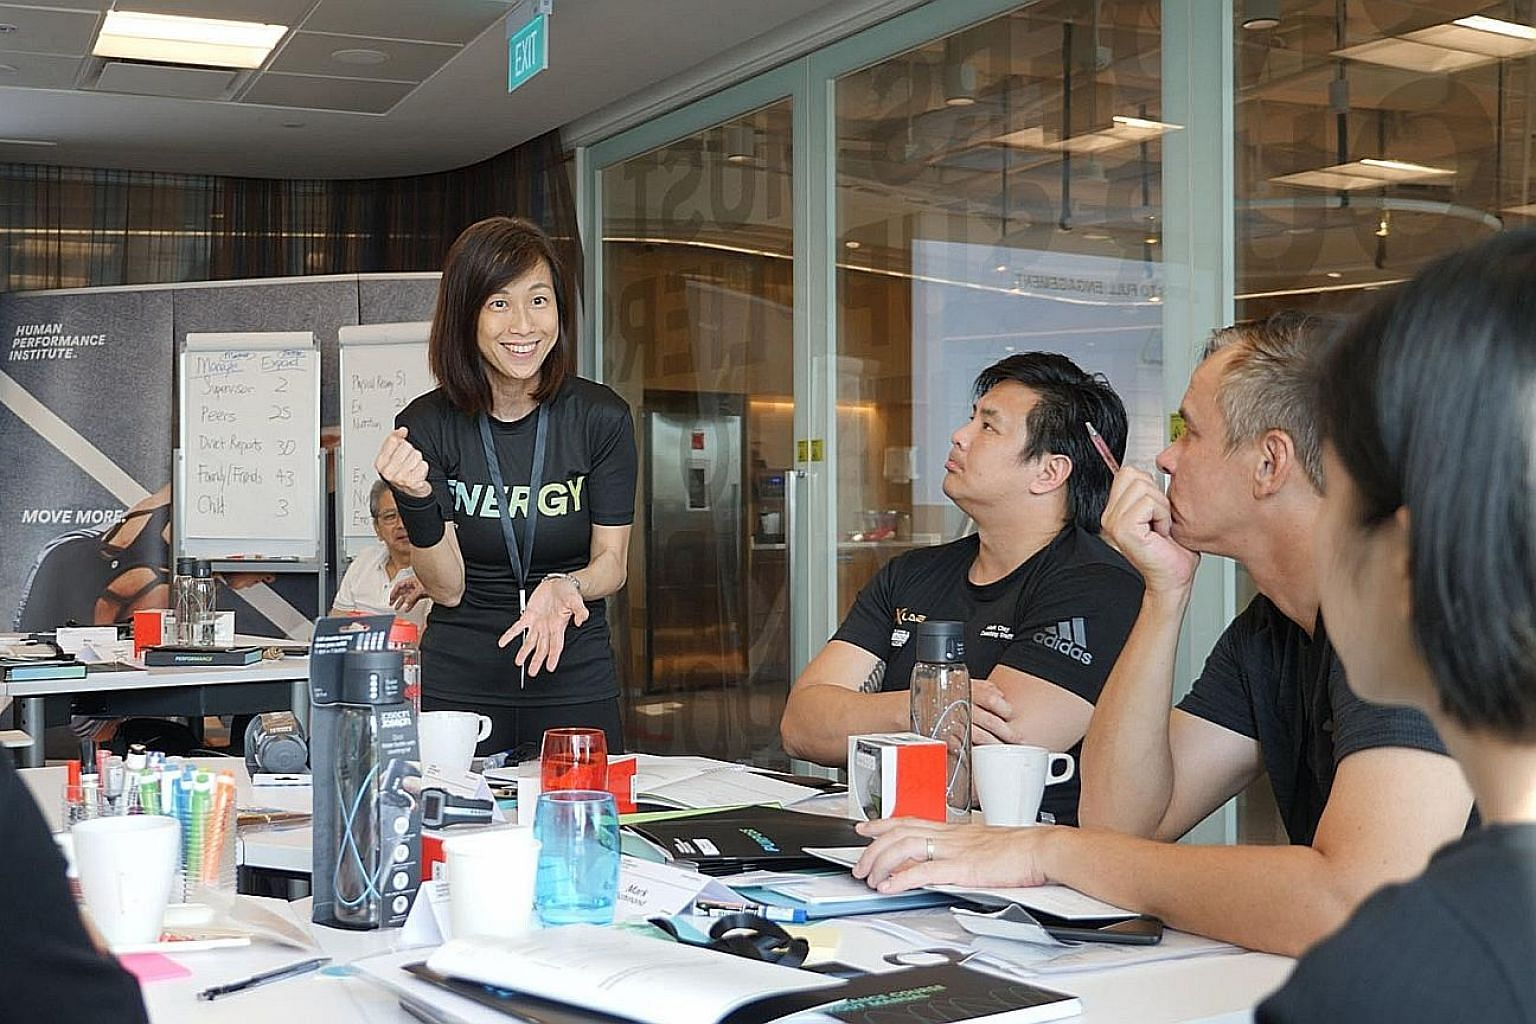 Johnson & Johnson Human Performance Institute trainer Chan Wai Yee guiding participants at the course to identify personal goals.